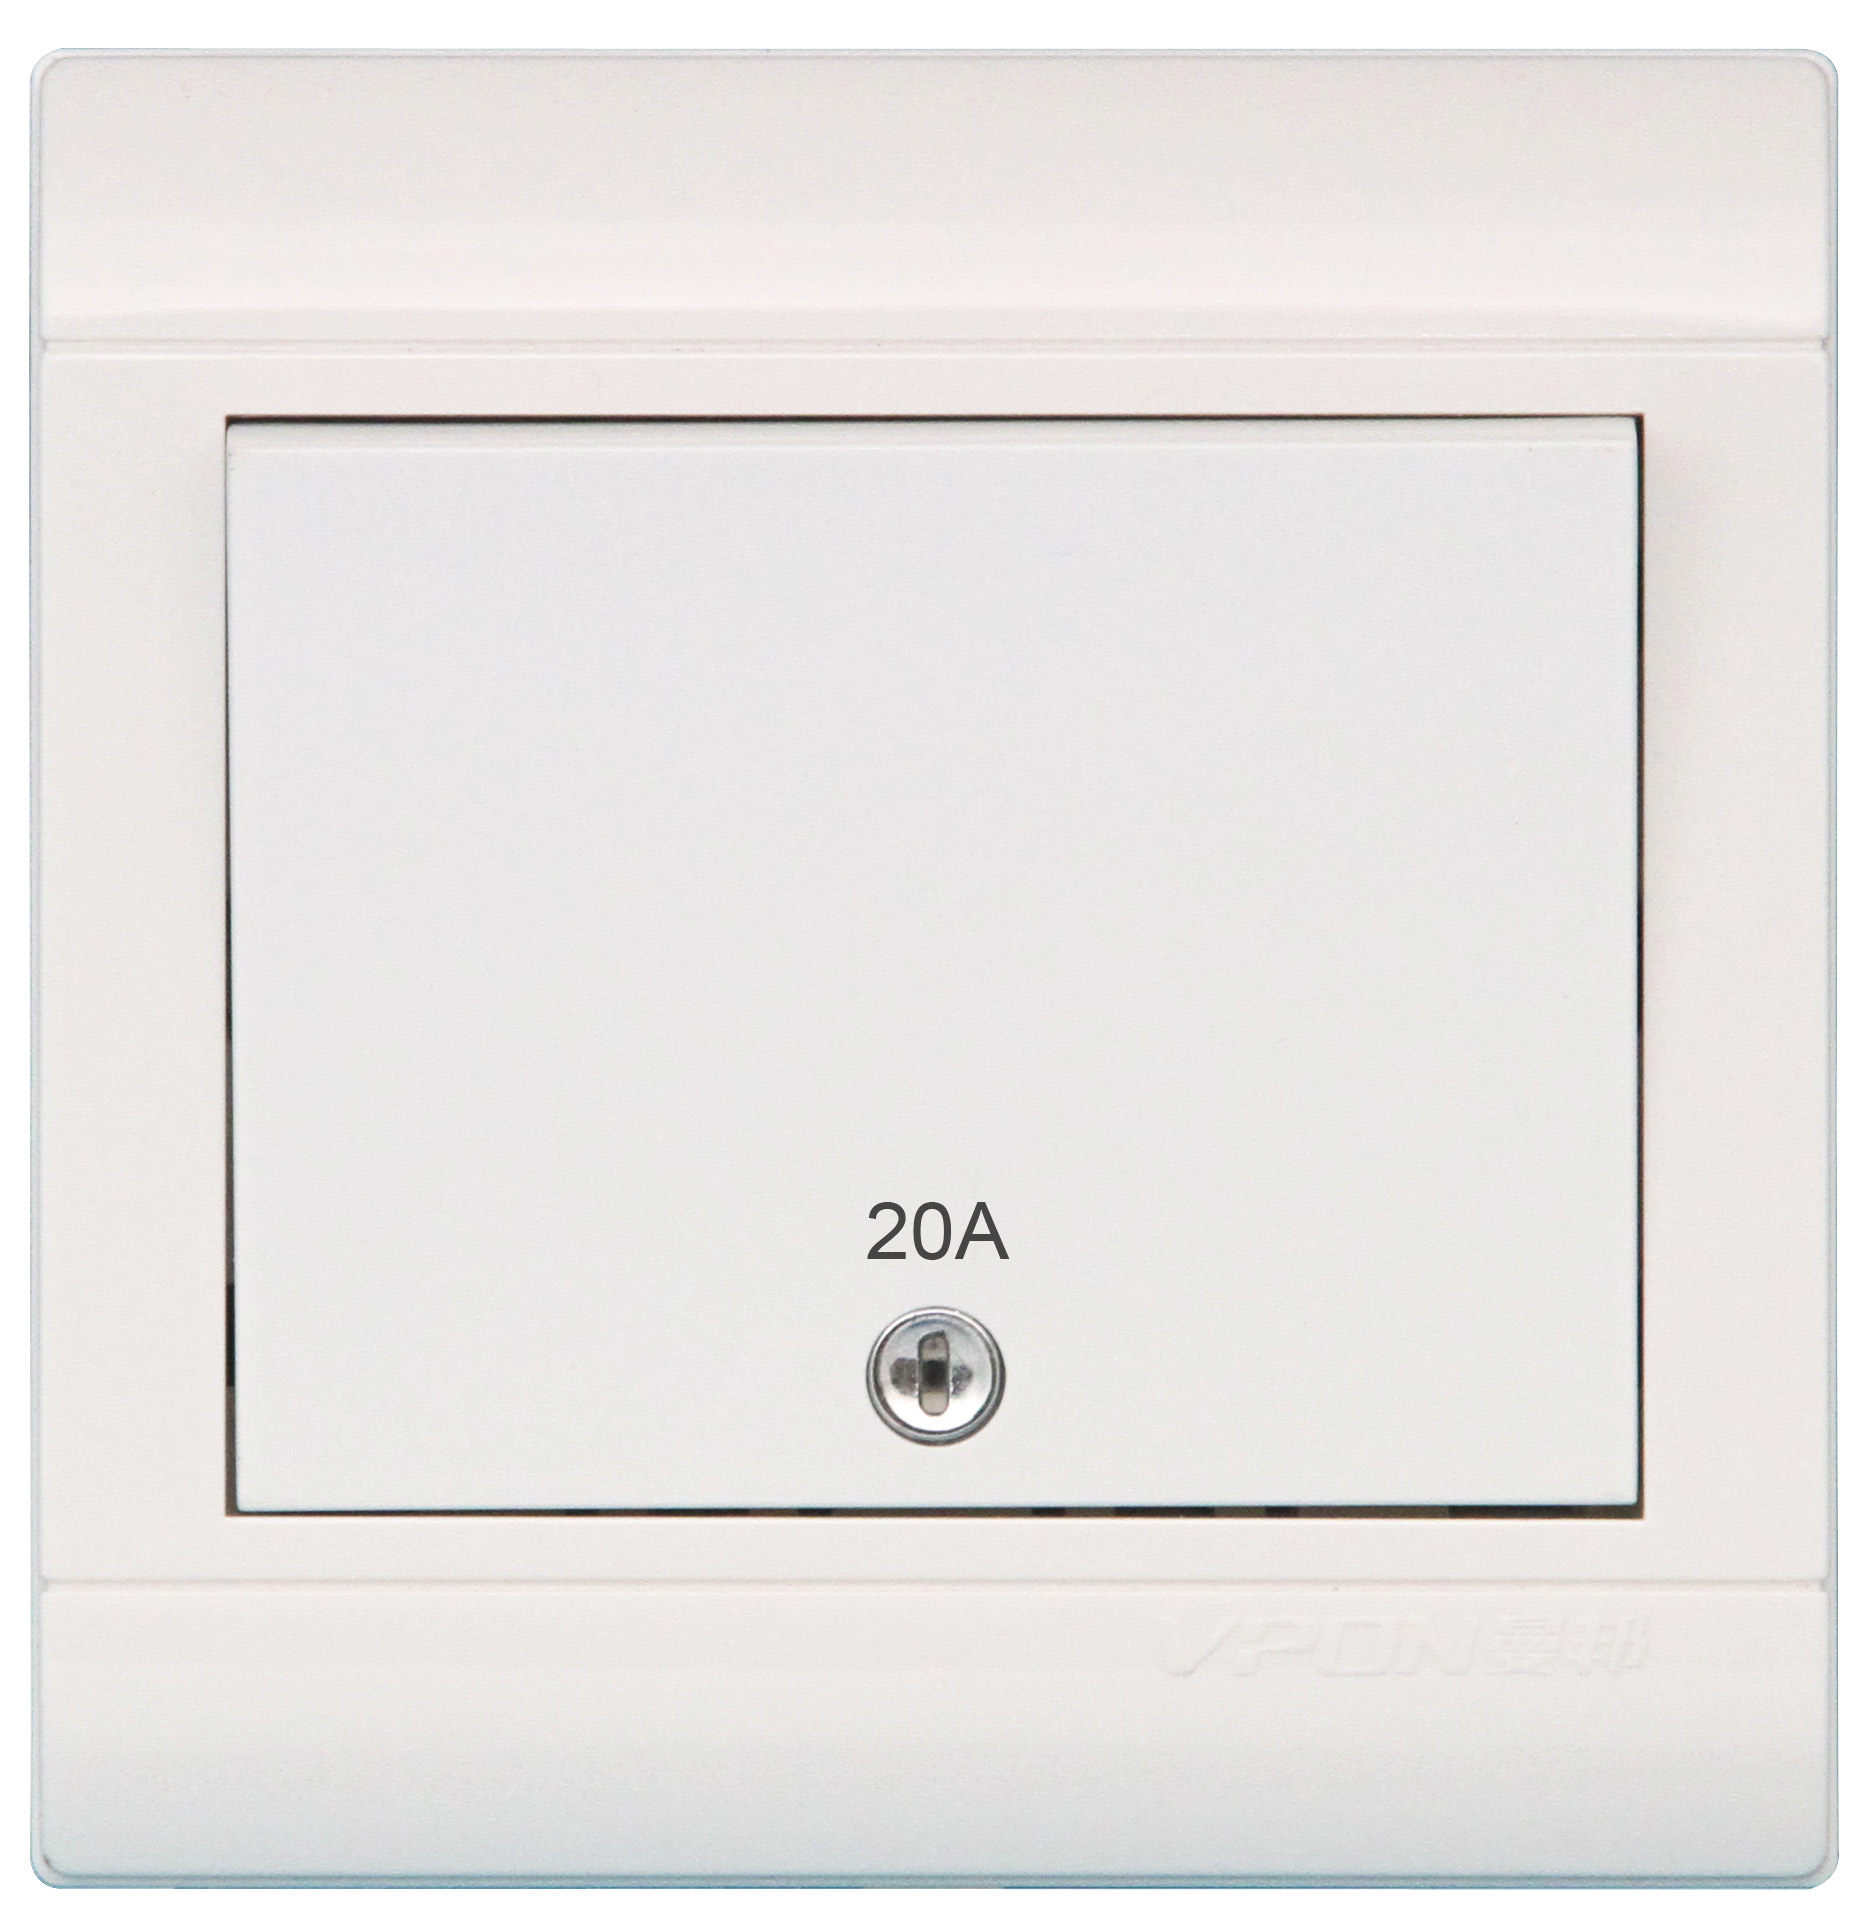 20A D/P Wall Switch with LED